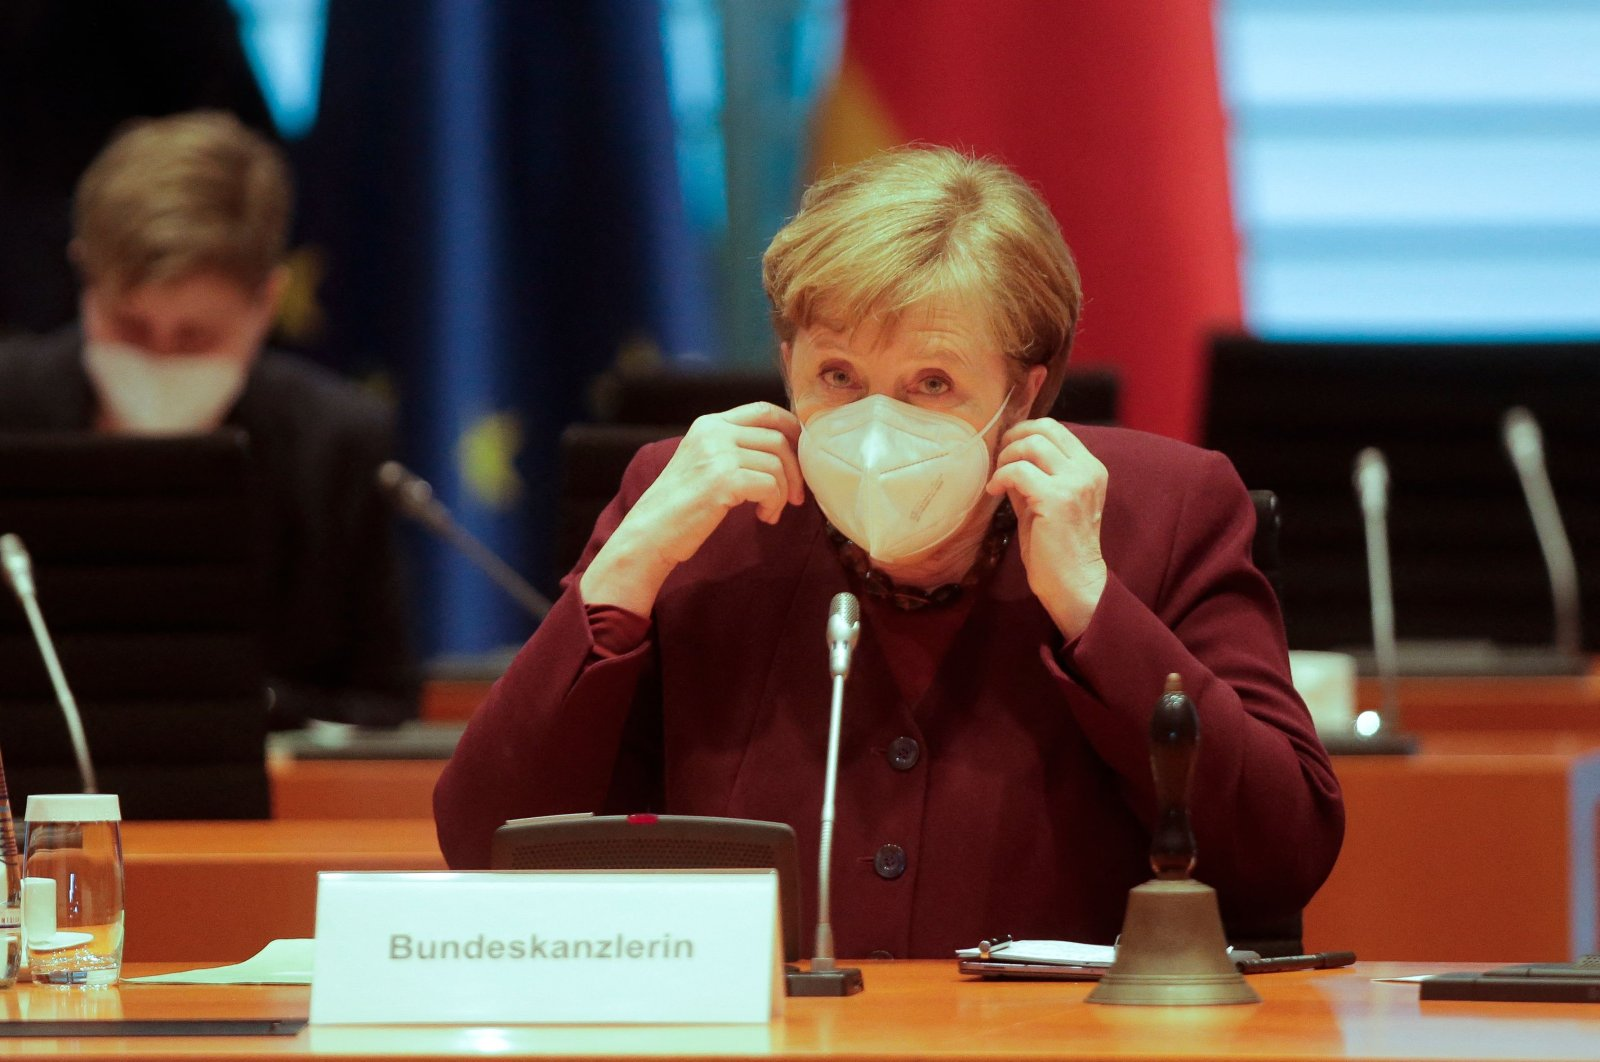 German Chancellor Angela Merkel wears a mask as she arrives for the weekly Cabinet meeting at the Chancellery in Berlin, March 10, 2021. (AFP Photo)